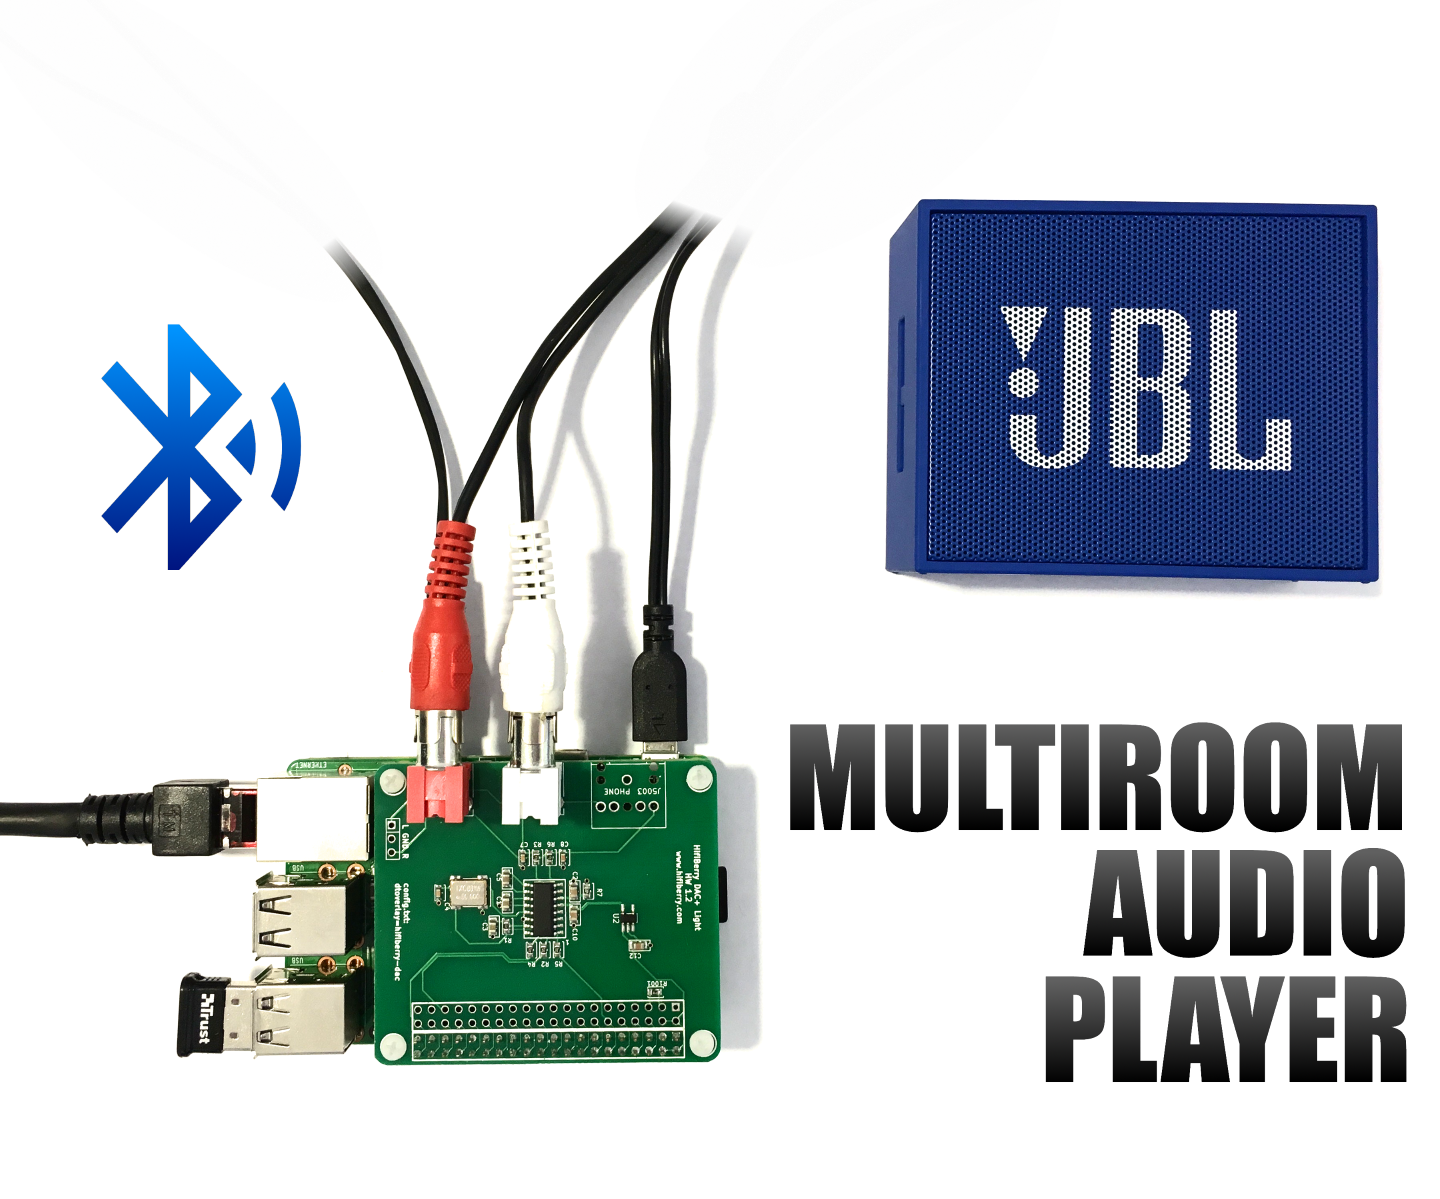 3 Audio Players in 1 Raspberry Pi With Bluetooth - Easy Multiroom HiFi Setup